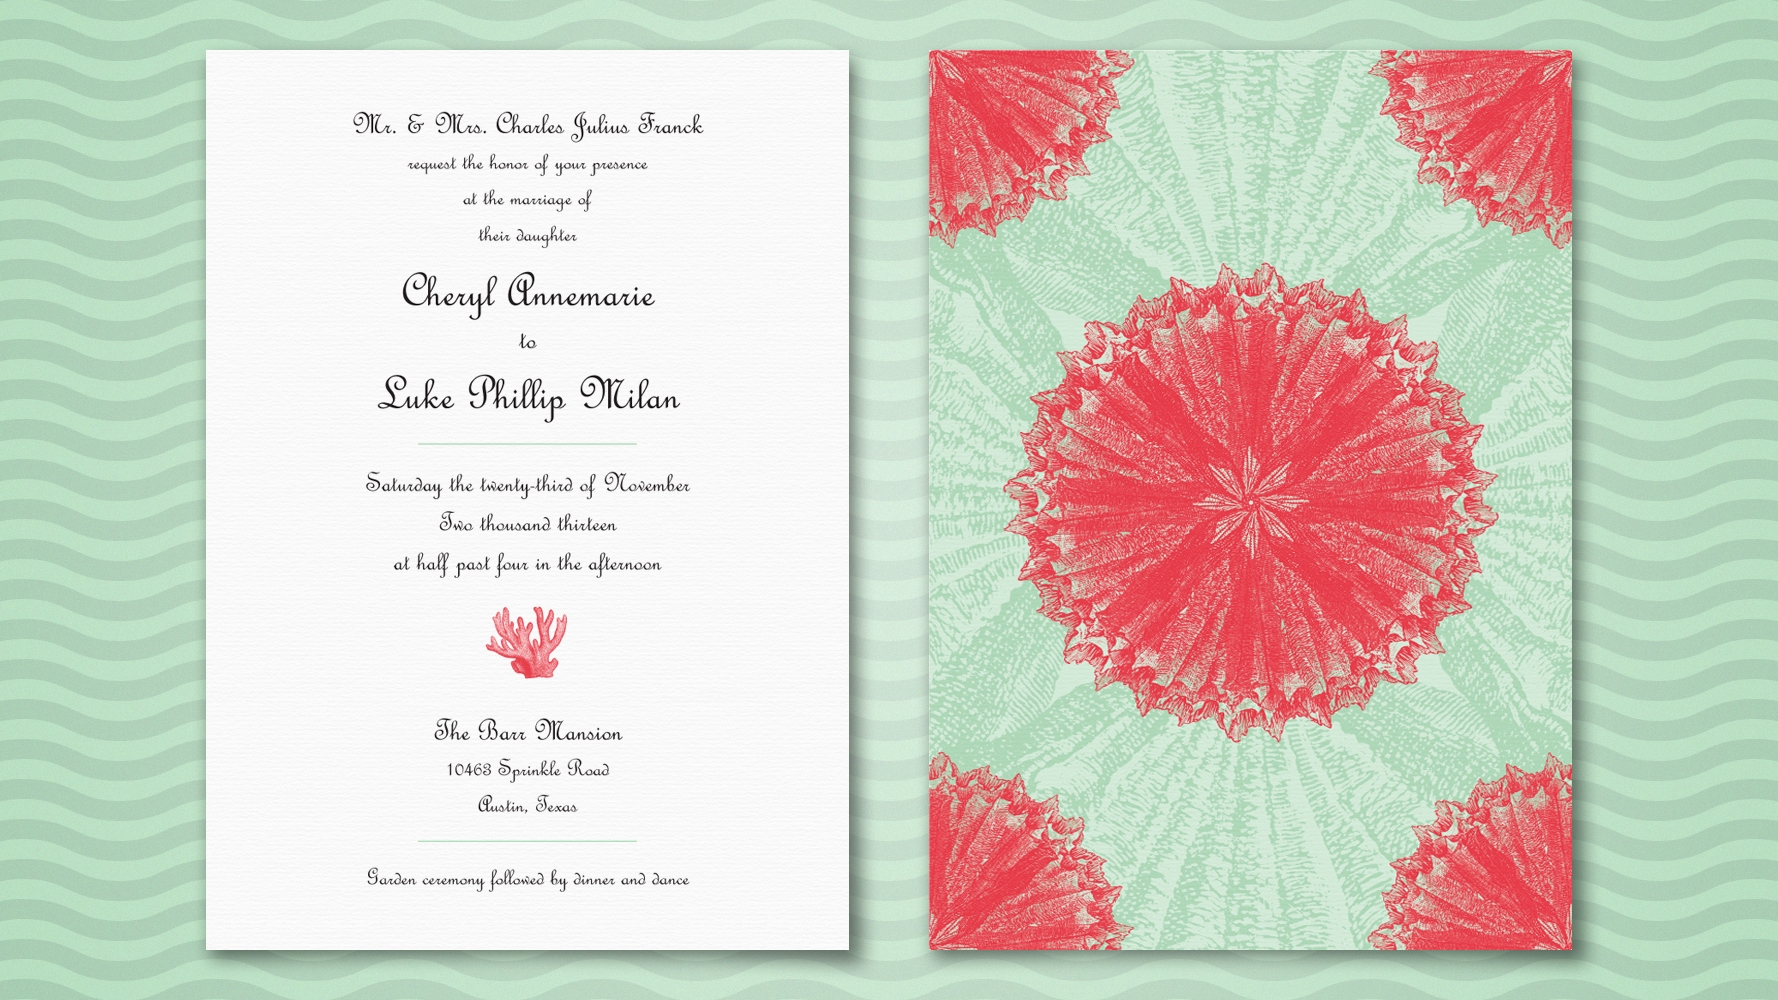 Milan Wedding_Bud Franck_Invitation 01.jpg